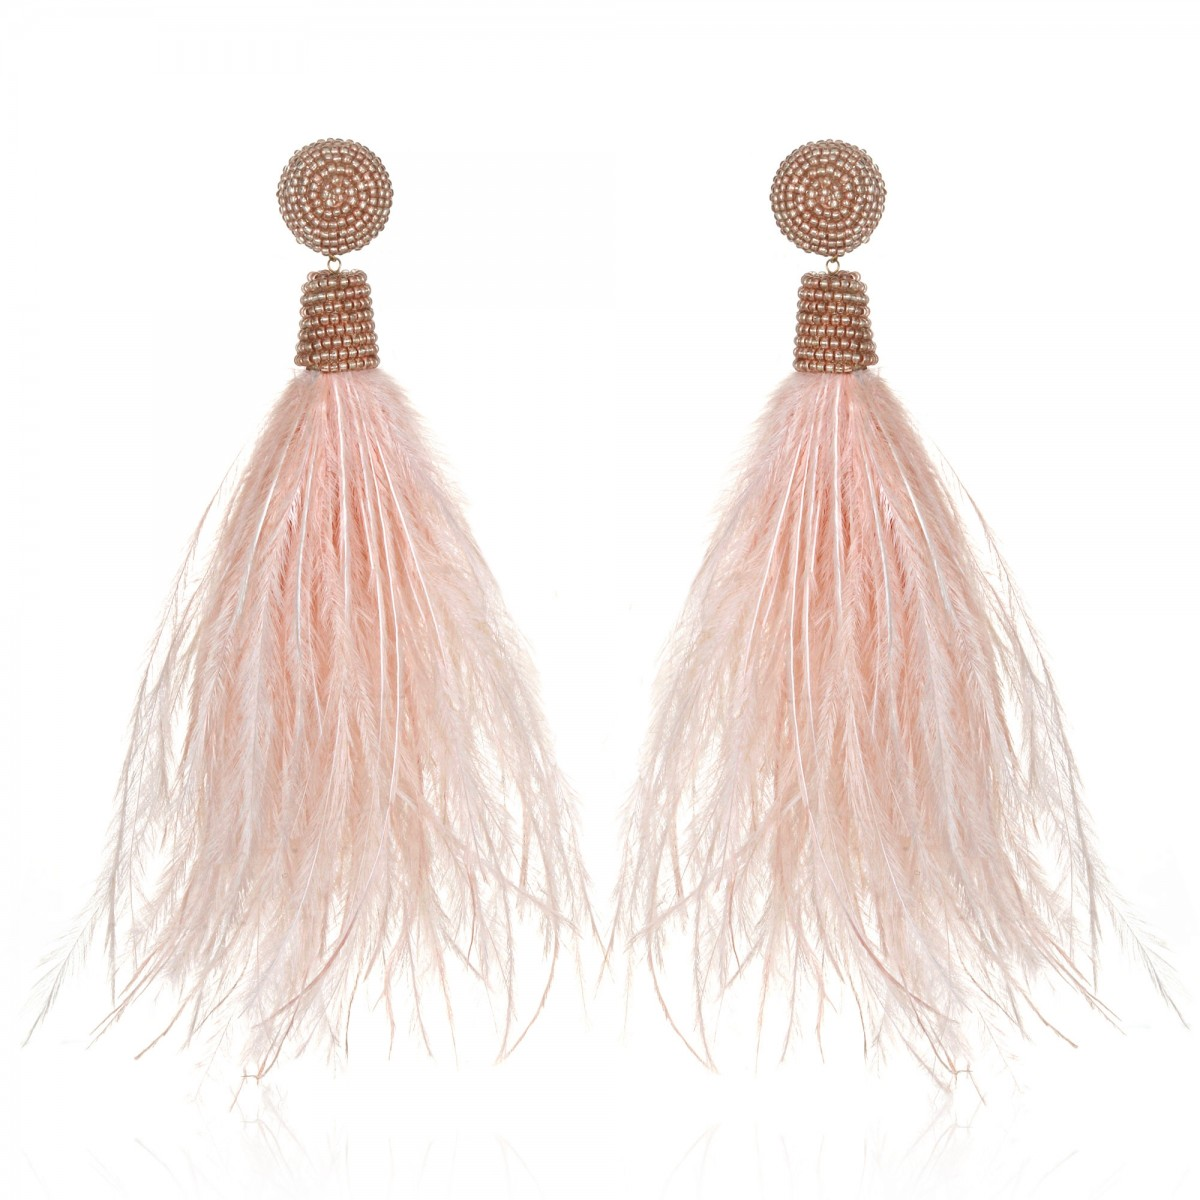 Blush Feather Earrings by SUZANNA DAI